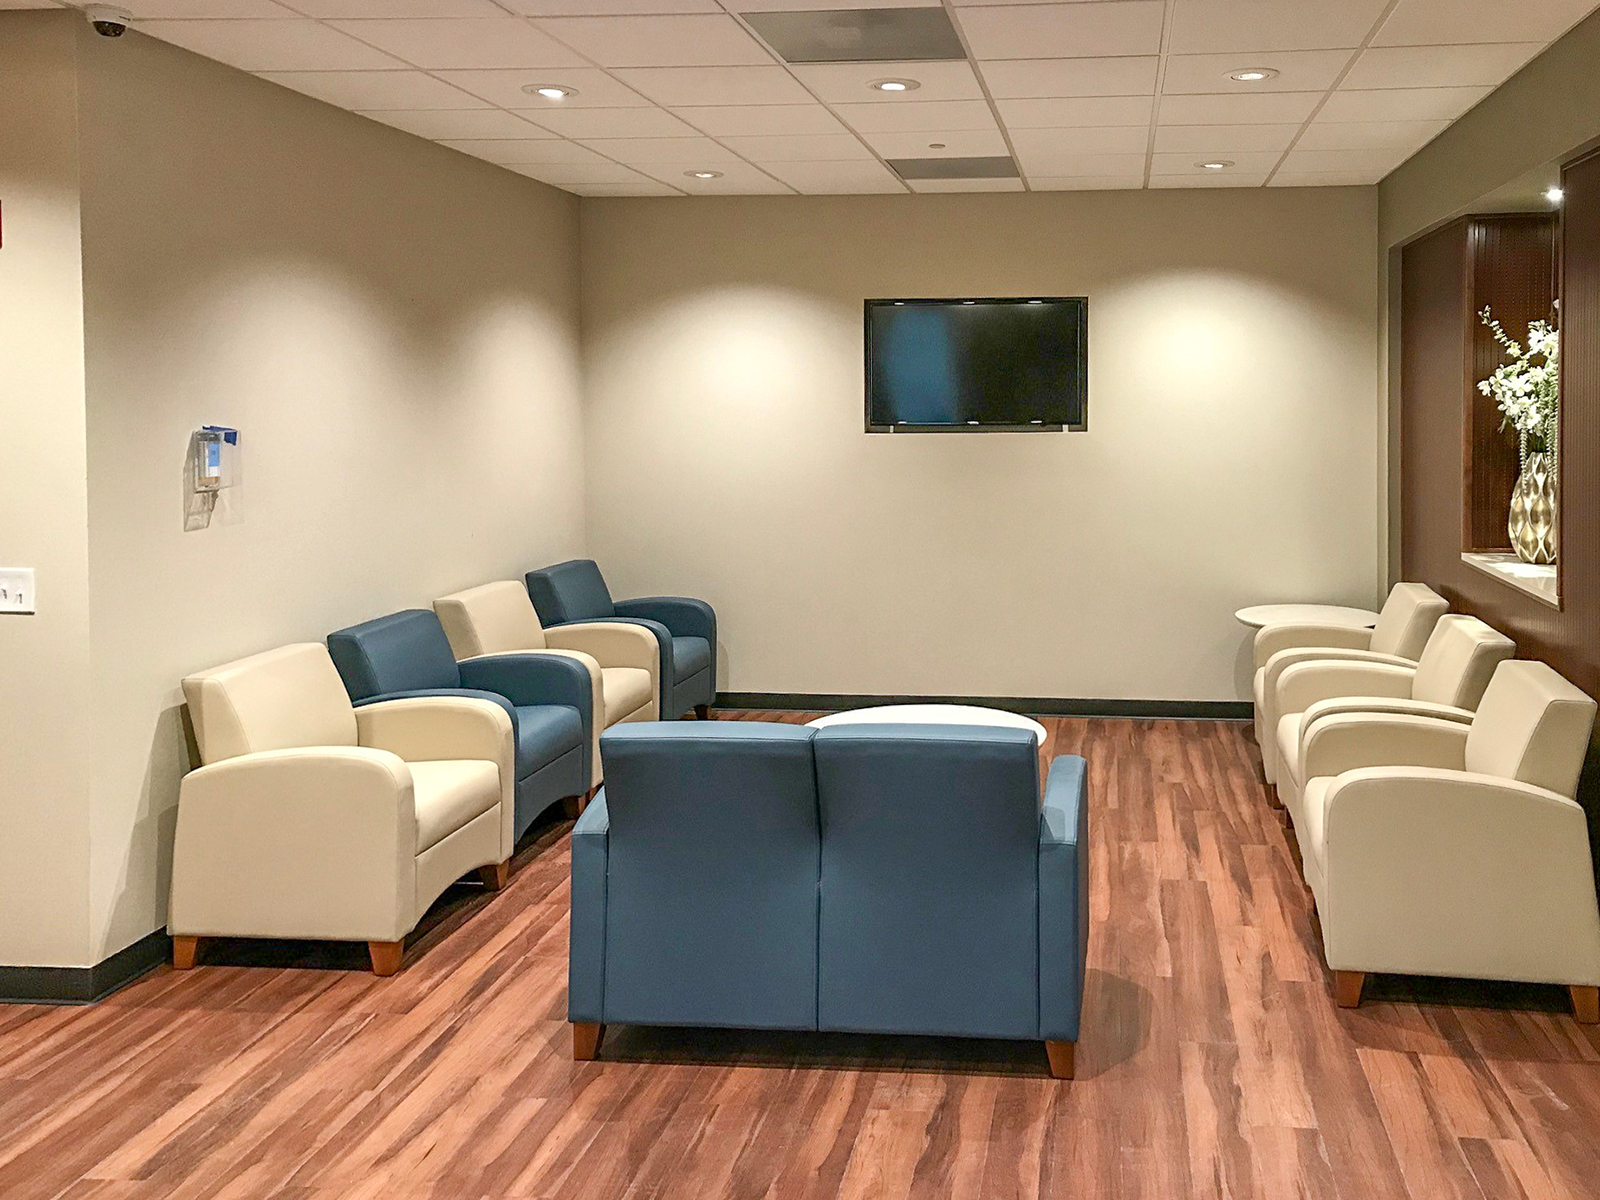 Heart Care Centers of Illinois